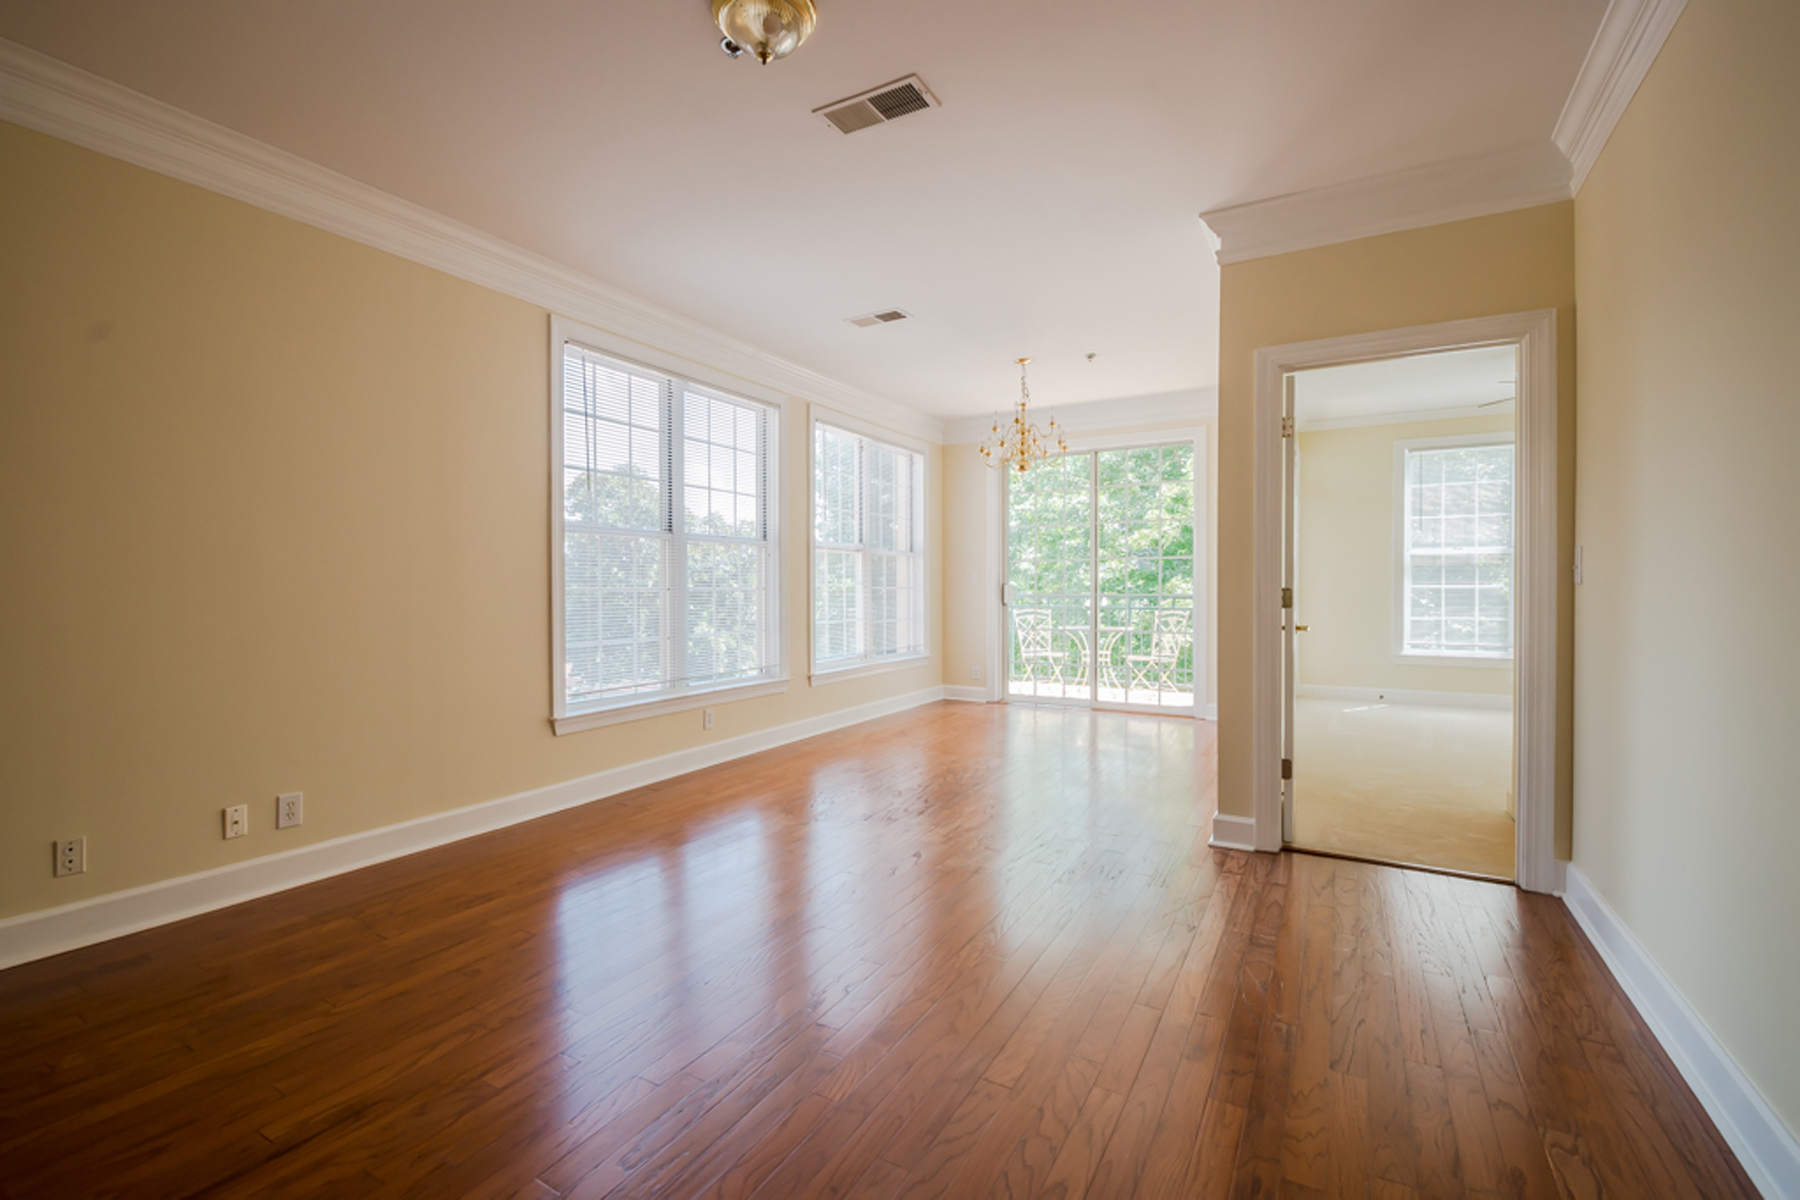 Additional photo for property listing at All New And Move-in Ready One Bedroom With Den 3101 Howell Mill Road Unit 211 Atlanta, Geórgia 30327 Estados Unidos